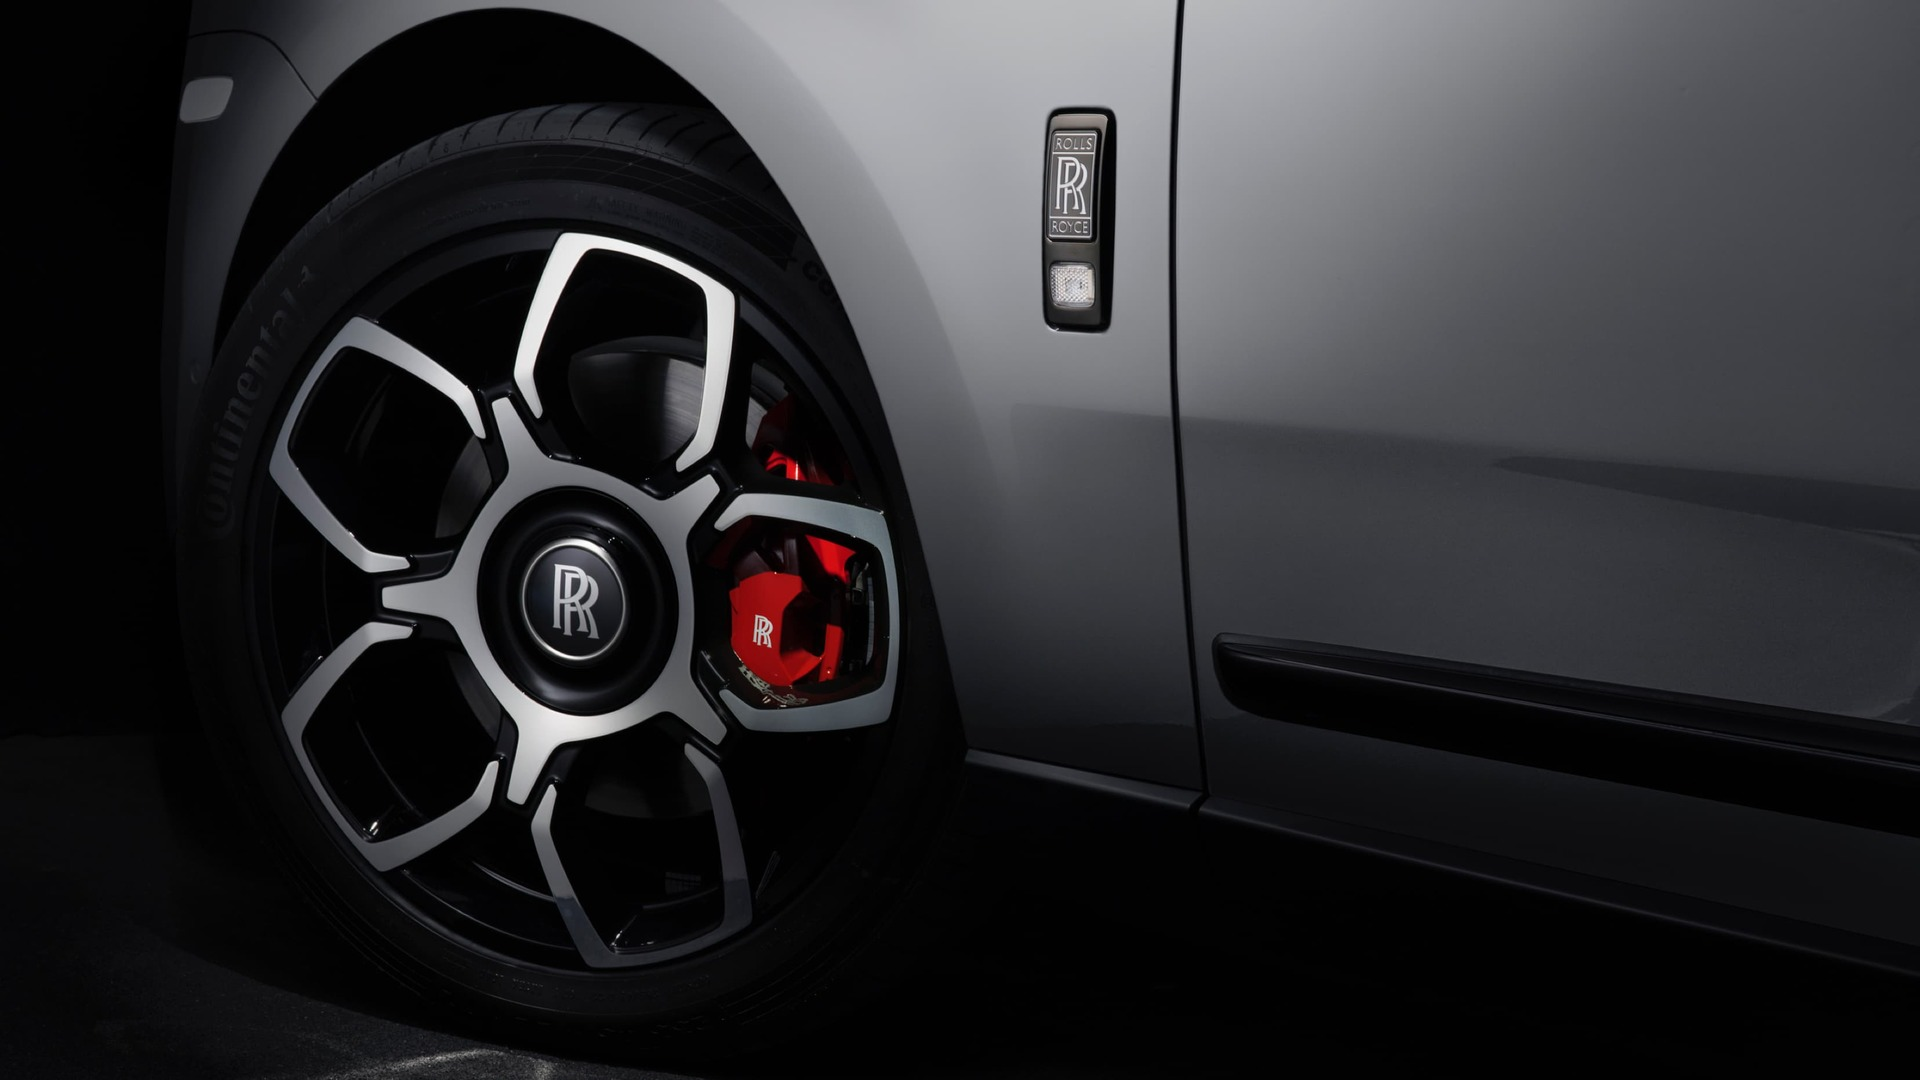 Left wheel of the Rolls-Royce Cullinan with the red brake calliper visible.